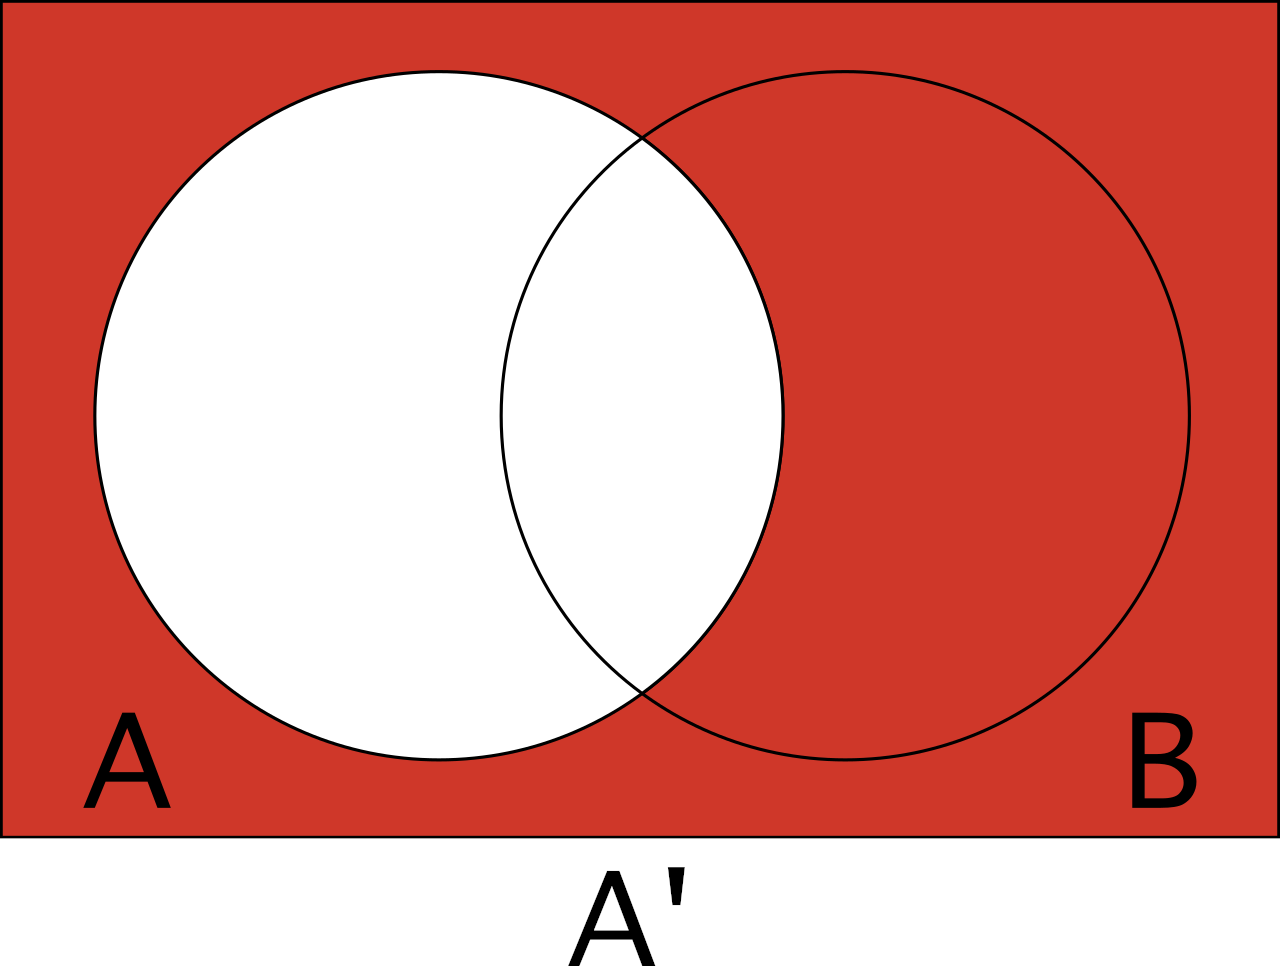 Venn diagram to help visualize the complement of A